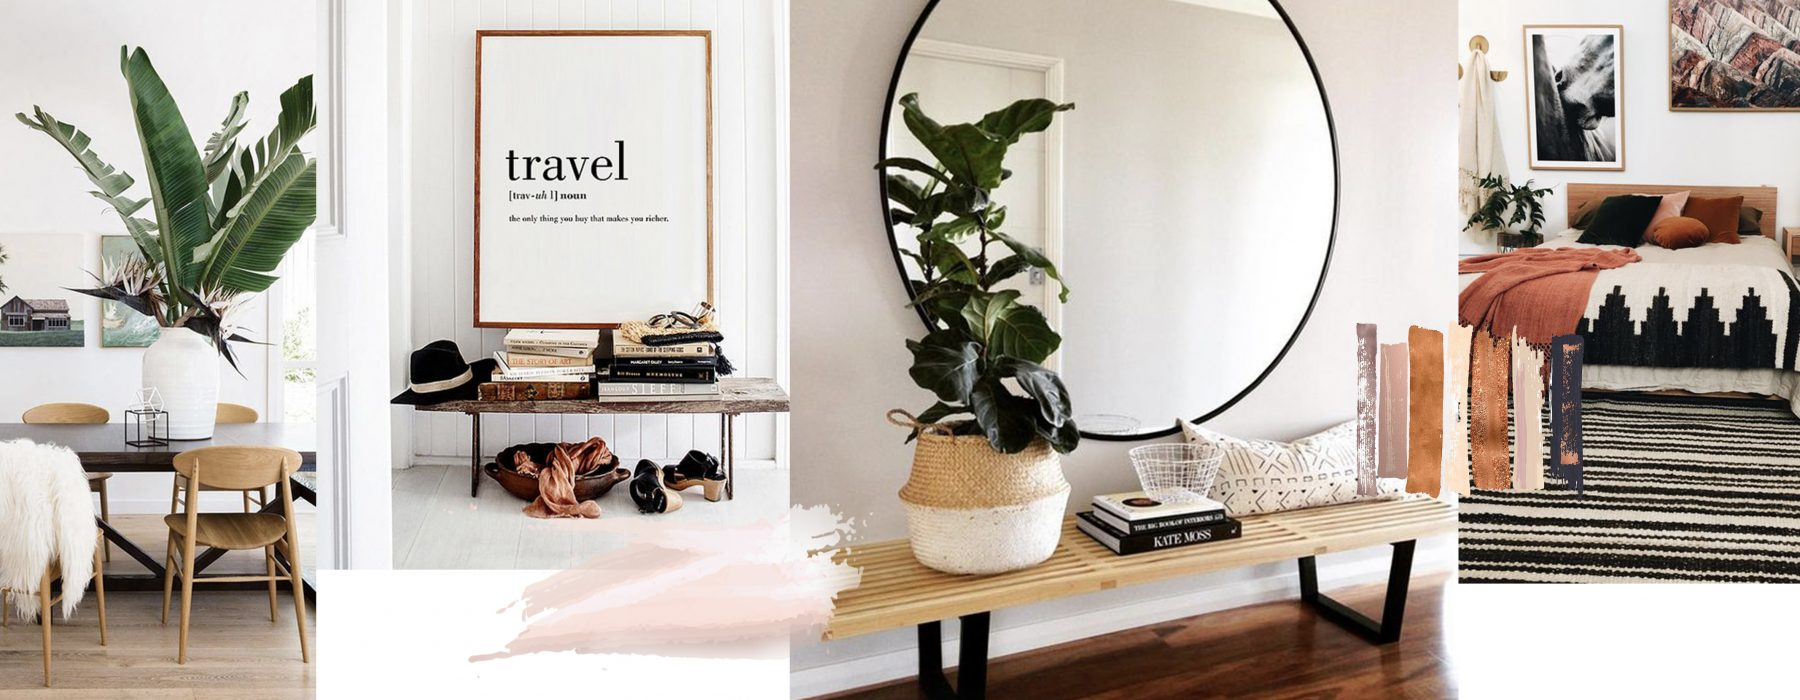 #PINTERESTWORTHY: 15 HOMEWARES THAT TRANSFORM YOUR HUMBLE ABODE